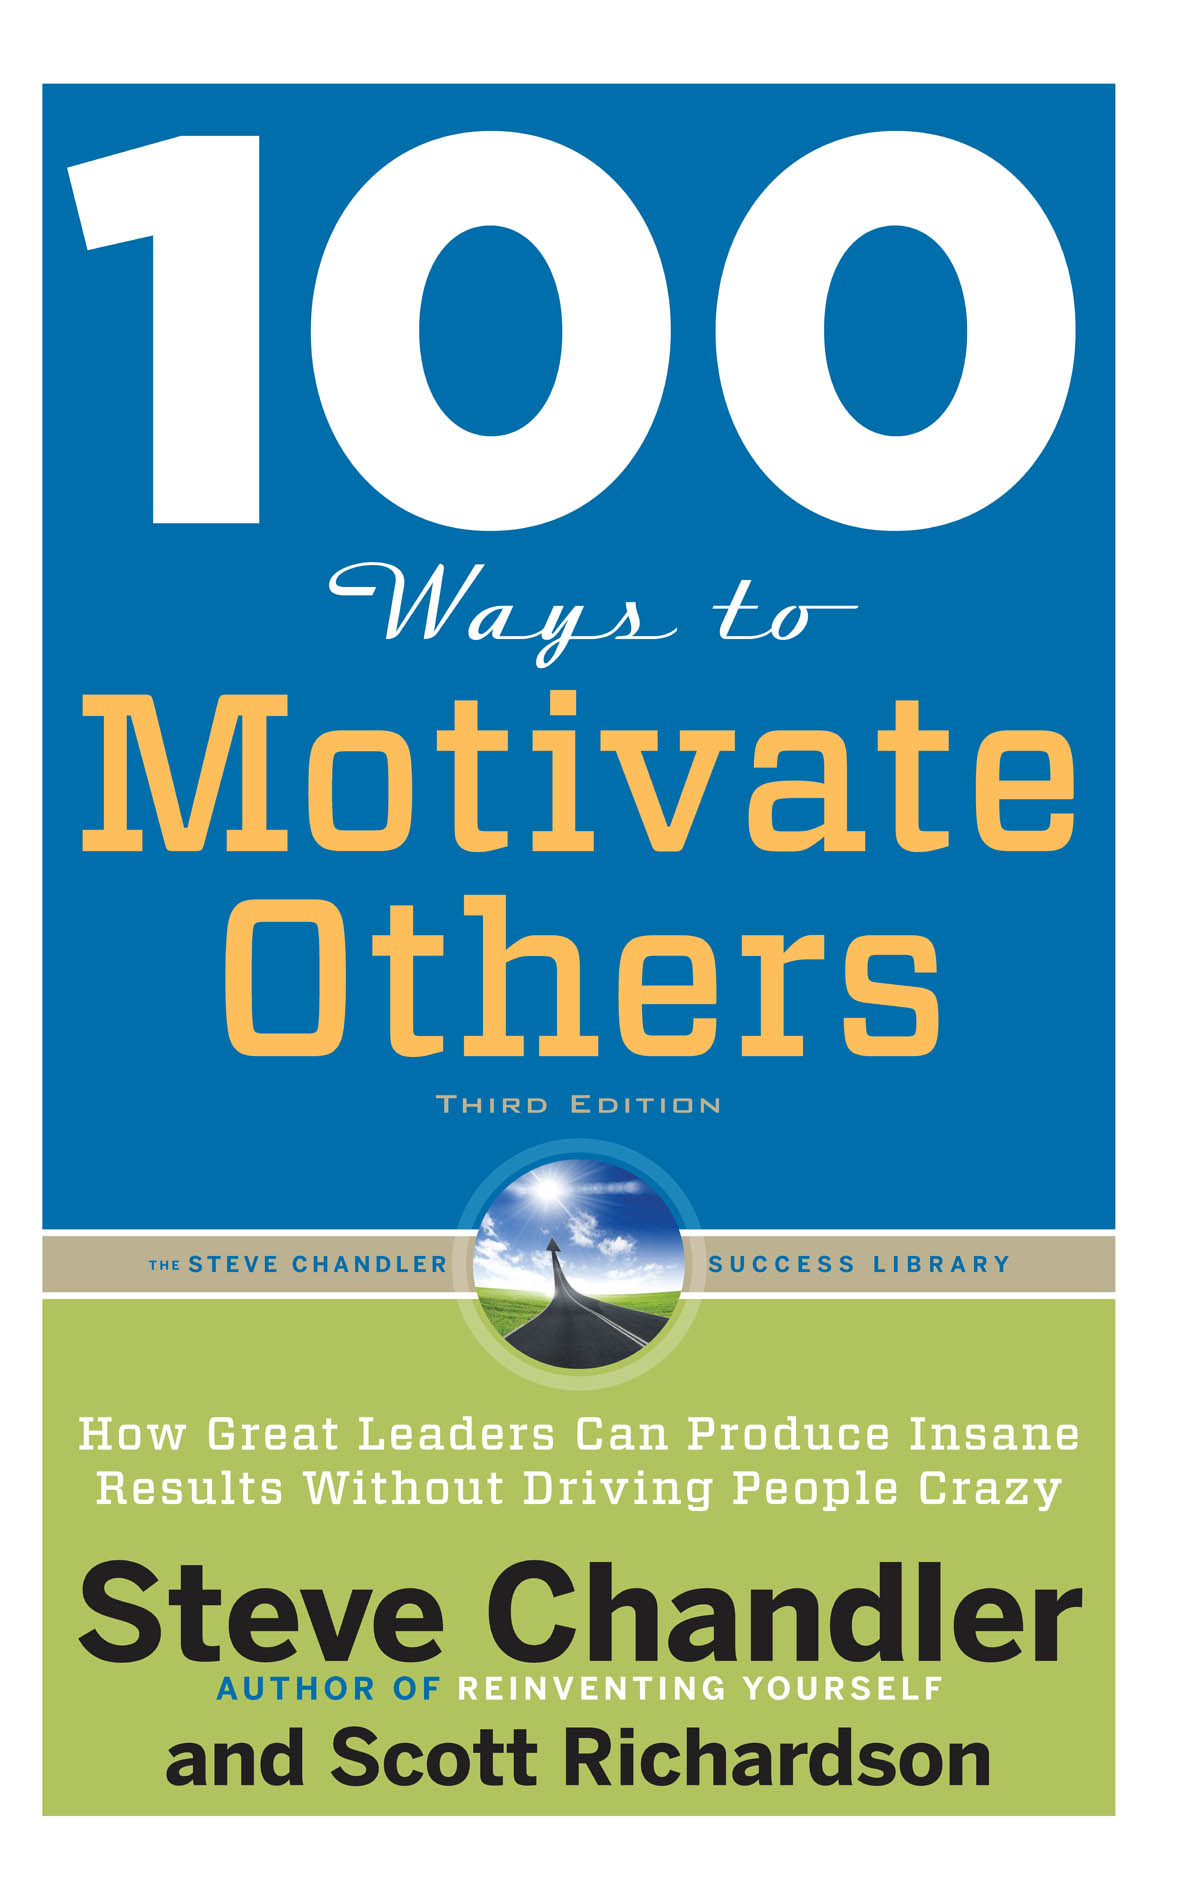 100 Ways to Motivate Others, Third Edition By: Chandler, Steve,Richardson, Scott